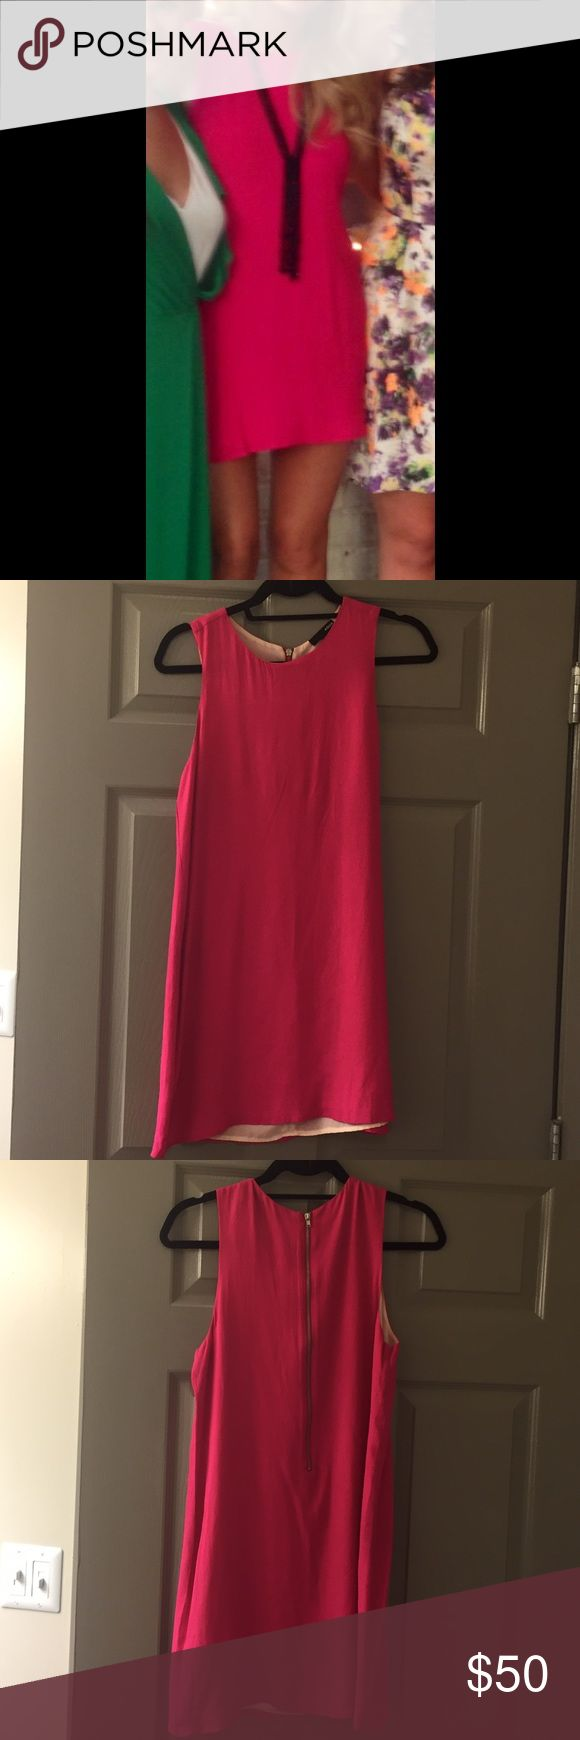 Aqua hot pink mini dress Excellent condition! Worn only once. Hot pink. Perfect for dressing up or down! Aqua Dresses Mini